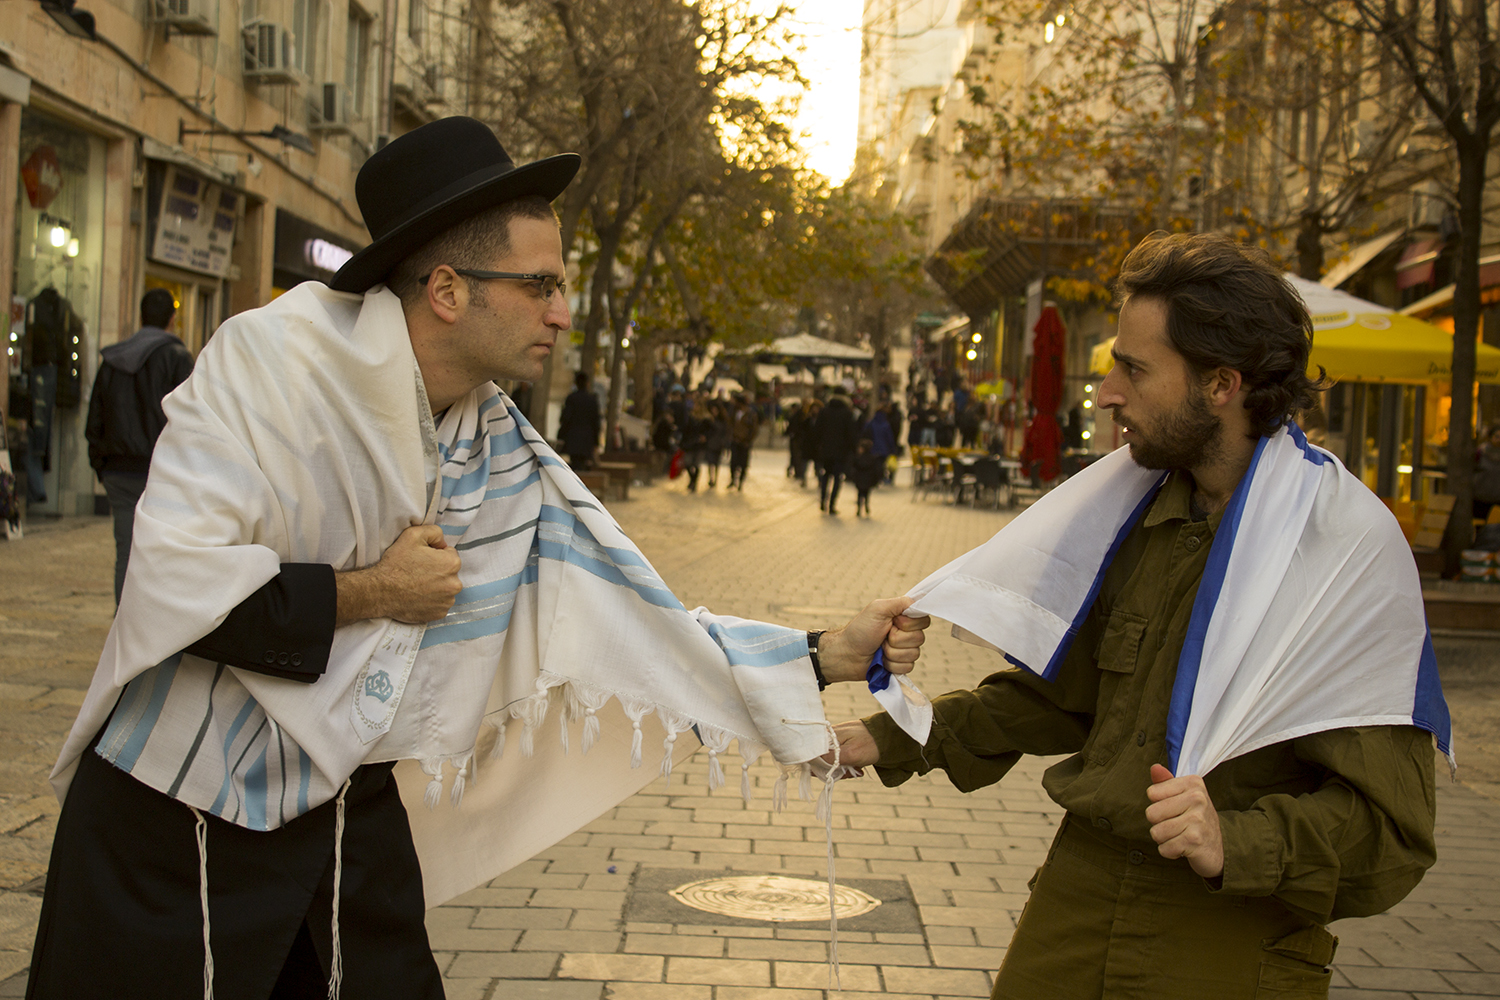 Haredi Jews In Israel: Post-Election Thoughts On Haredi Jews In Israel